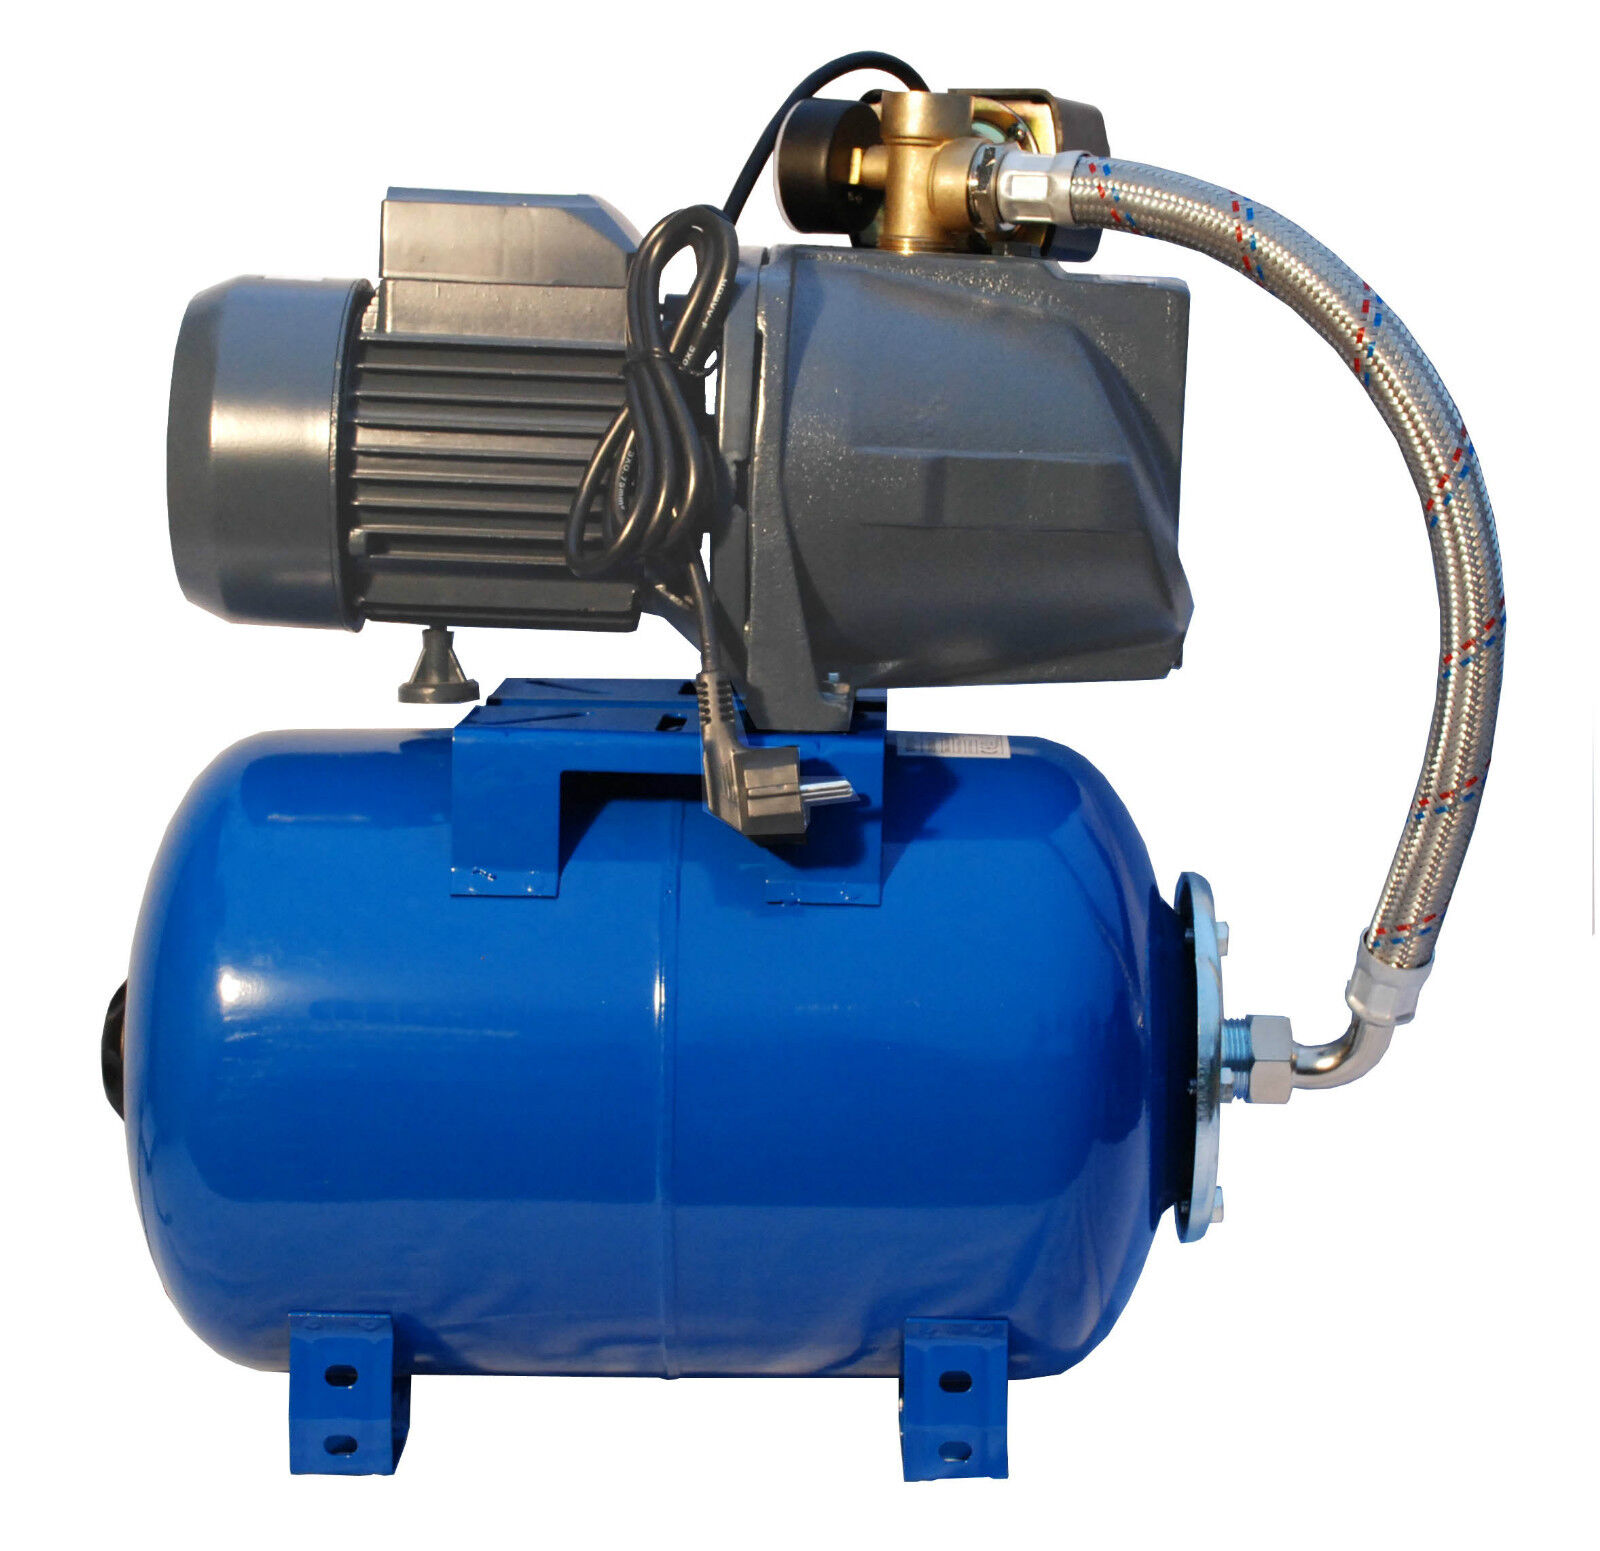 Ibo 2.5cmbooster Pompa Jsw150 2hp + 24l a Pressione Vessel-Well Mains Aumento